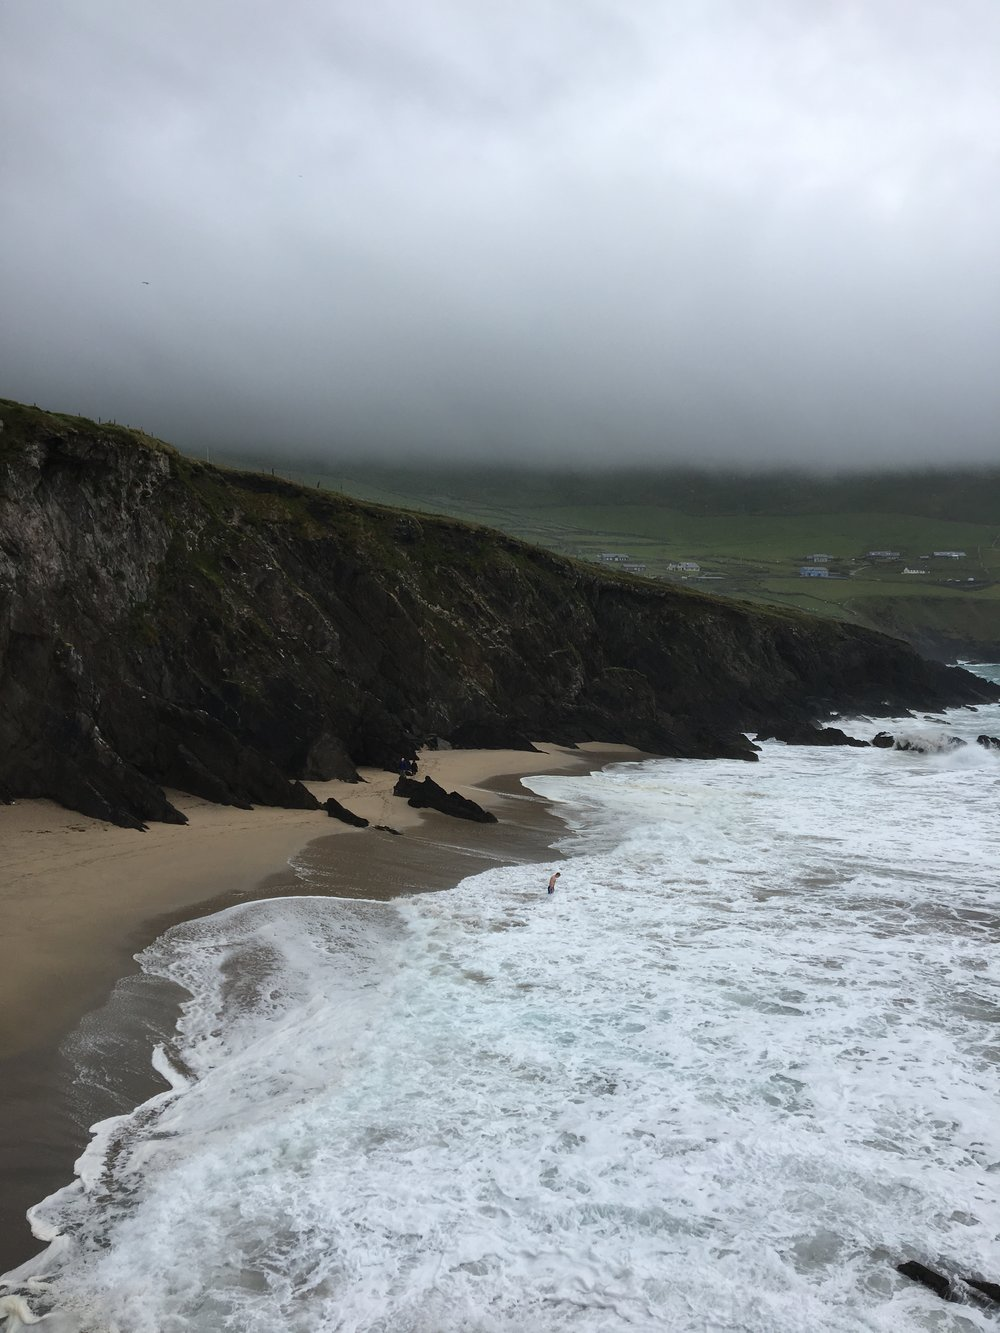 Dingle Peninsula, Ireland - Slea Head Drive - Things to see